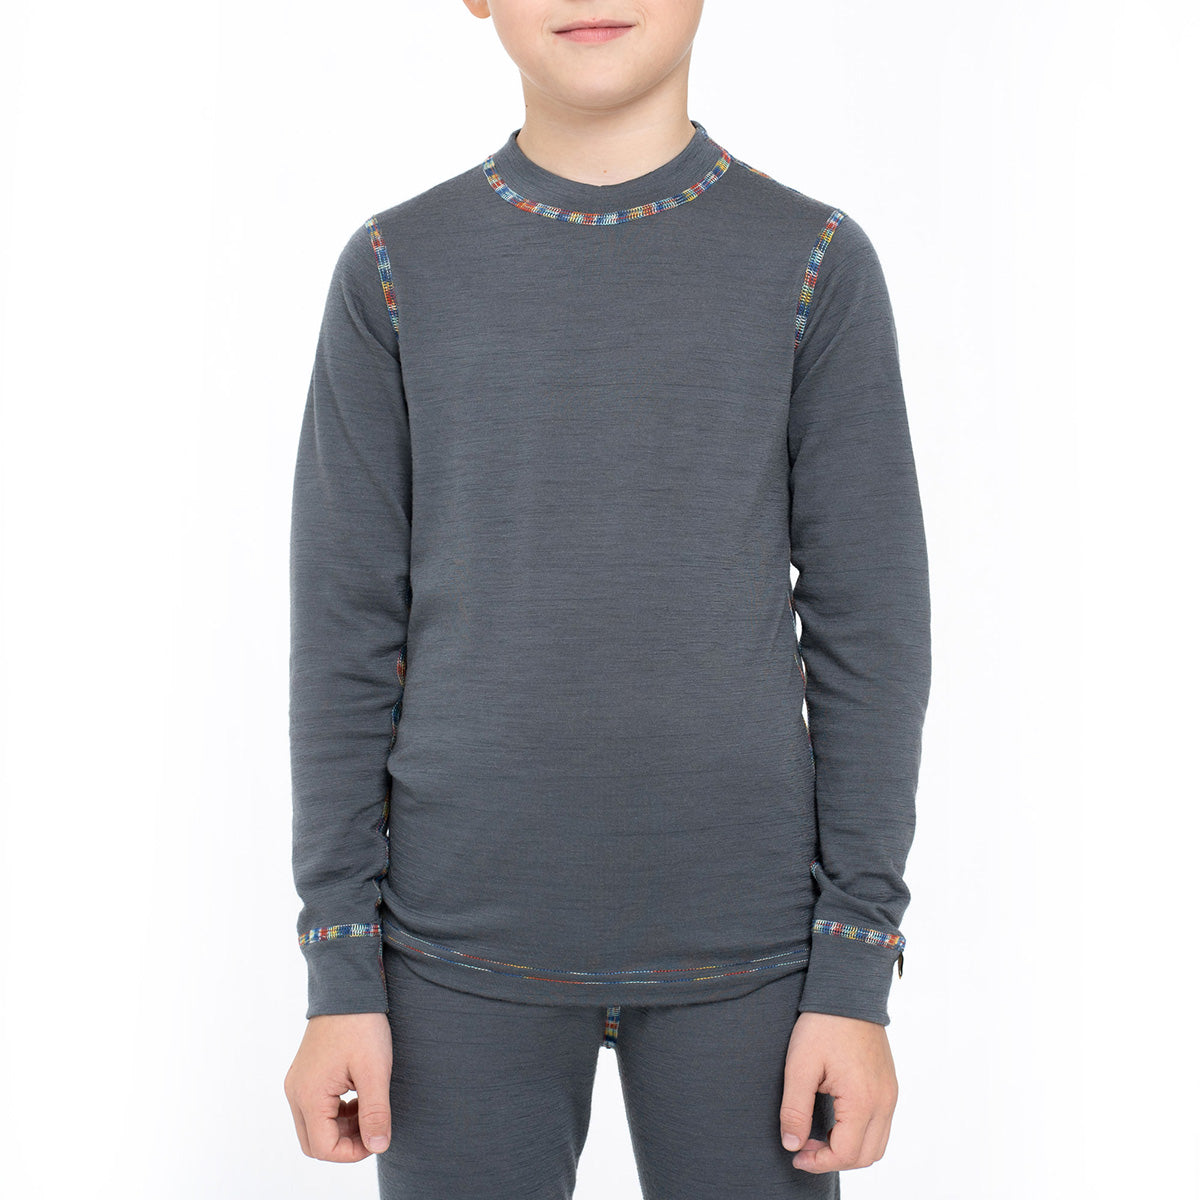 menique Kids' Merino 160 Long Sleeve Crew Perfect Grey Color